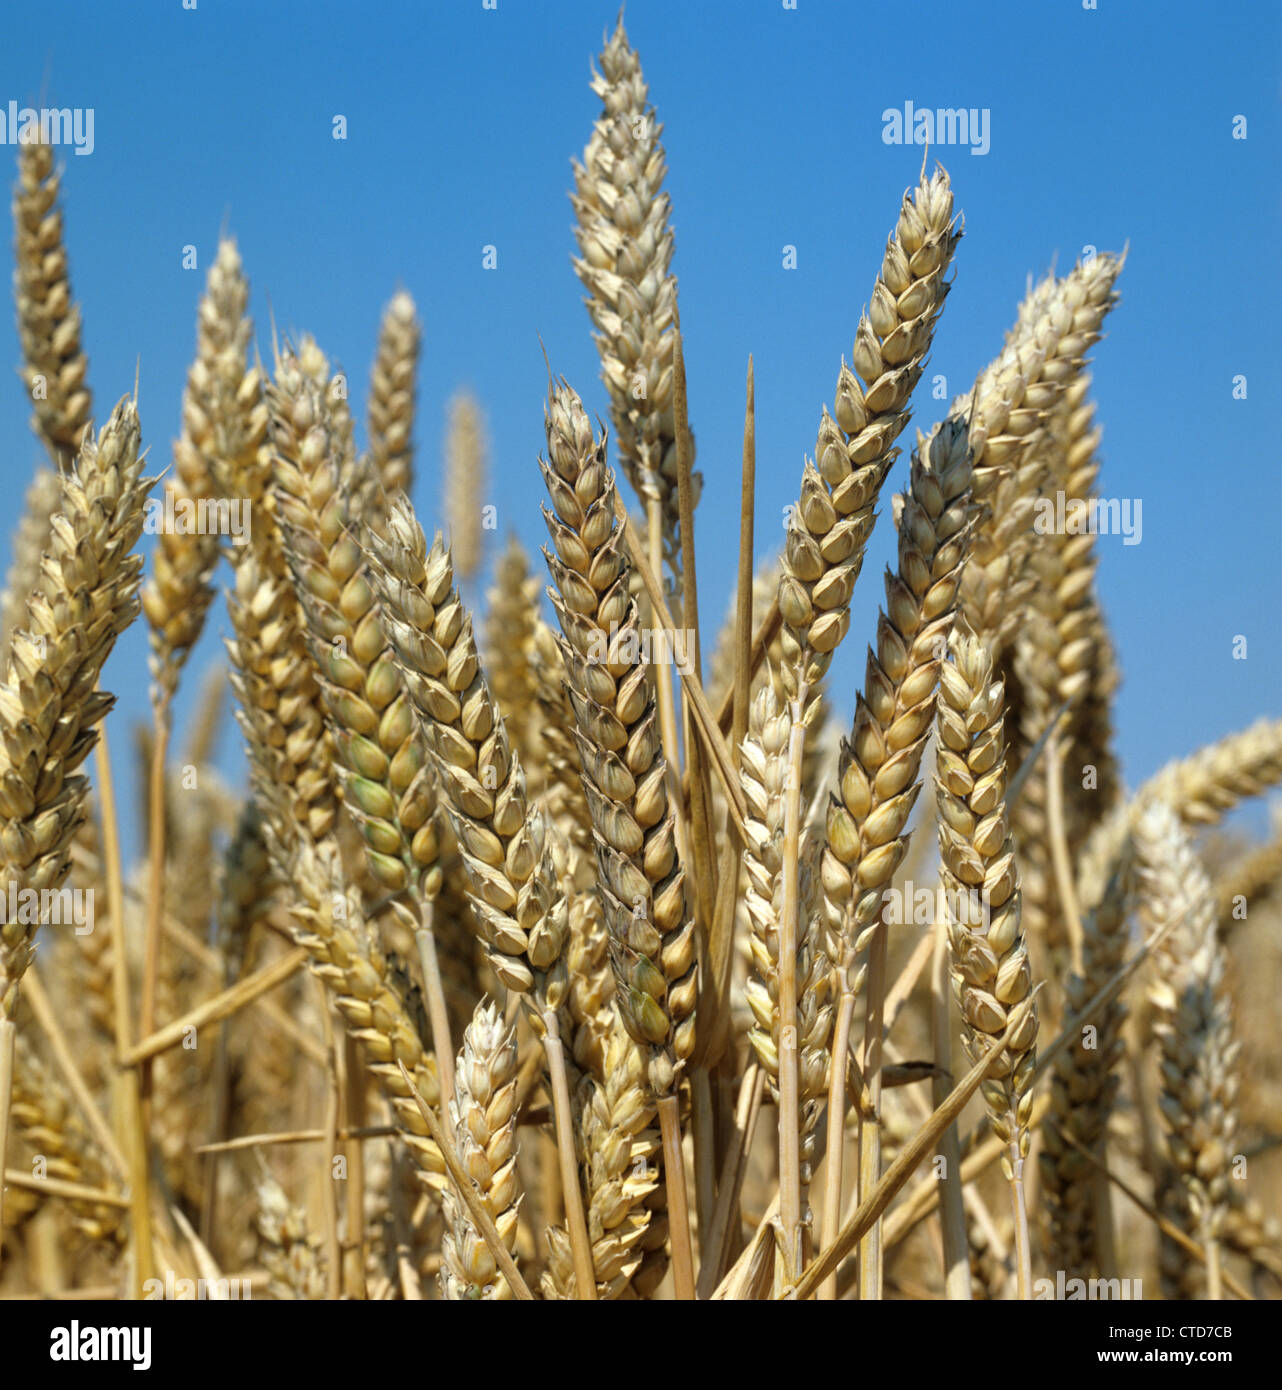 Ripening ears of wheat against a blue summer sky - Stock Image